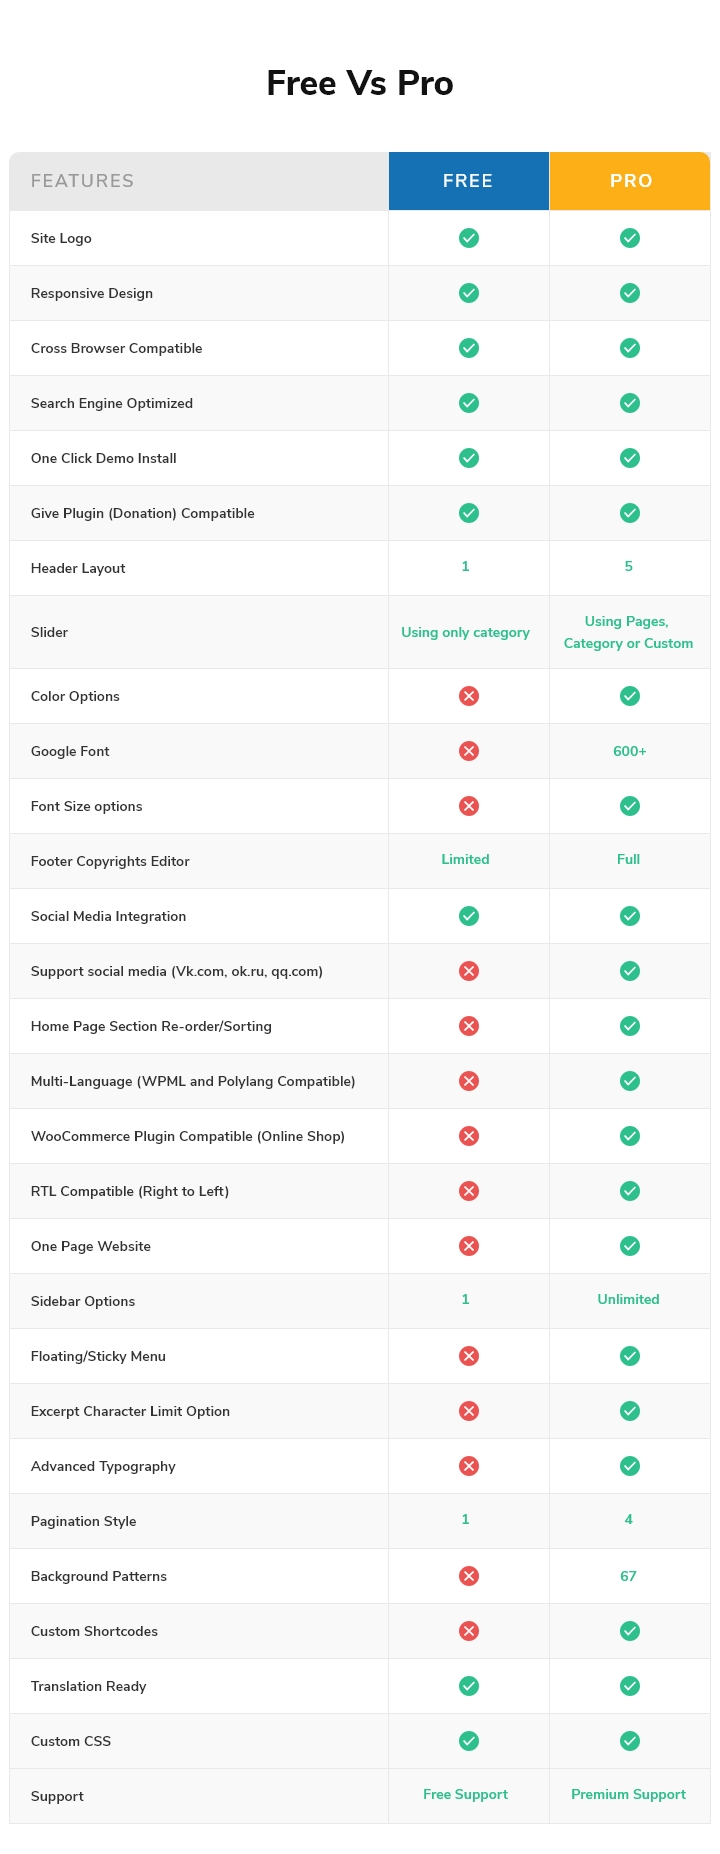 Charity Care free-vs-pro features comparision